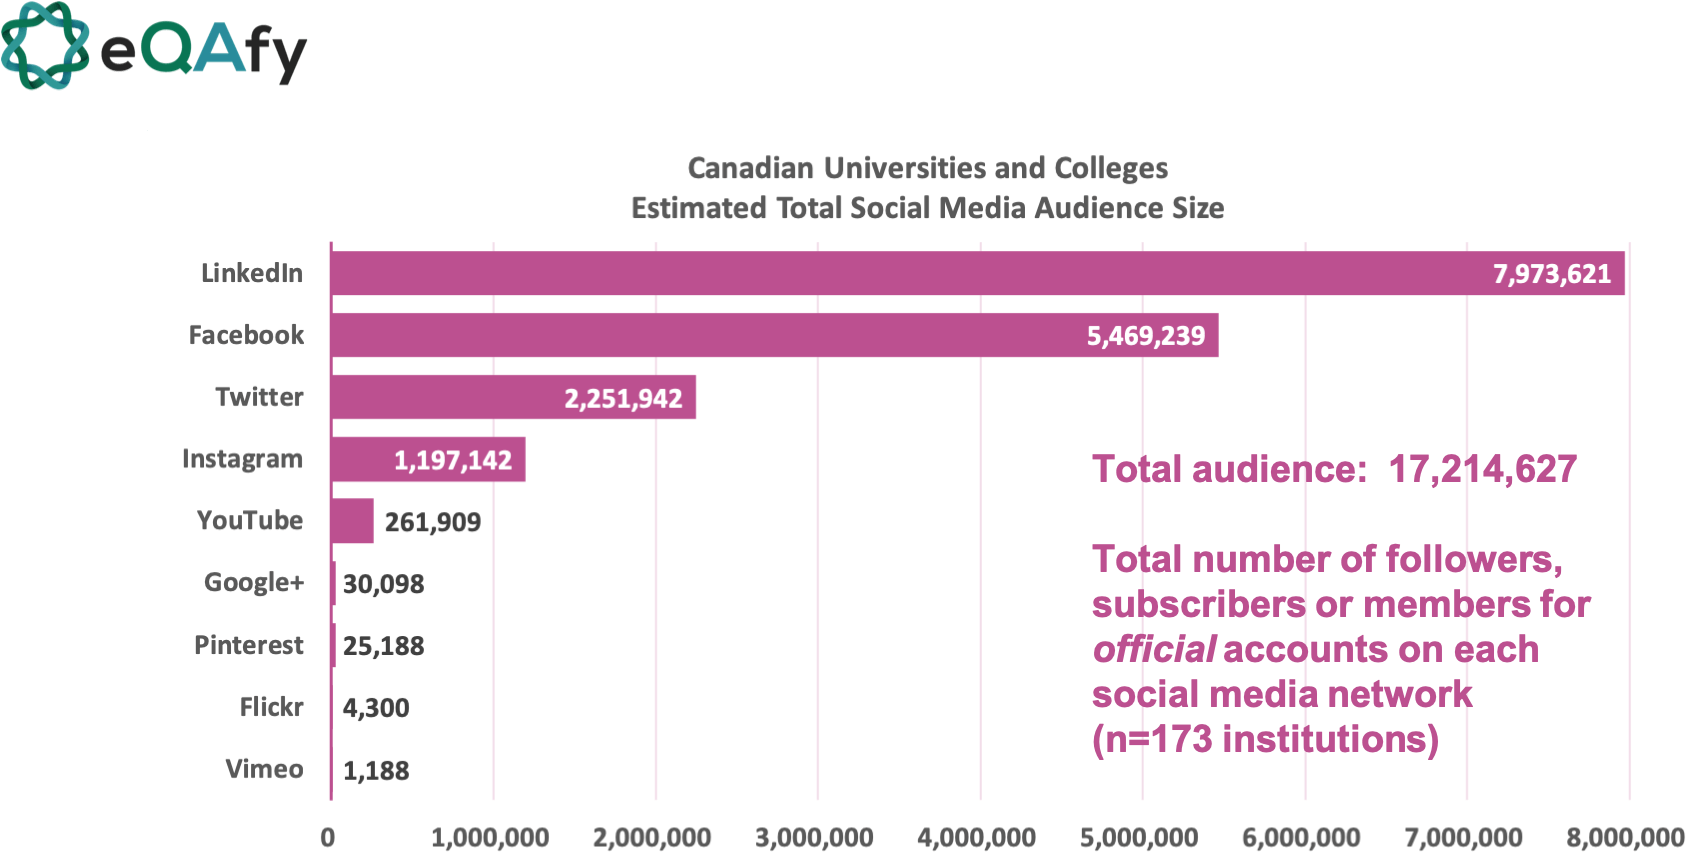 social media networks estimated audience size for higher education/post-secondary institutions in Canada